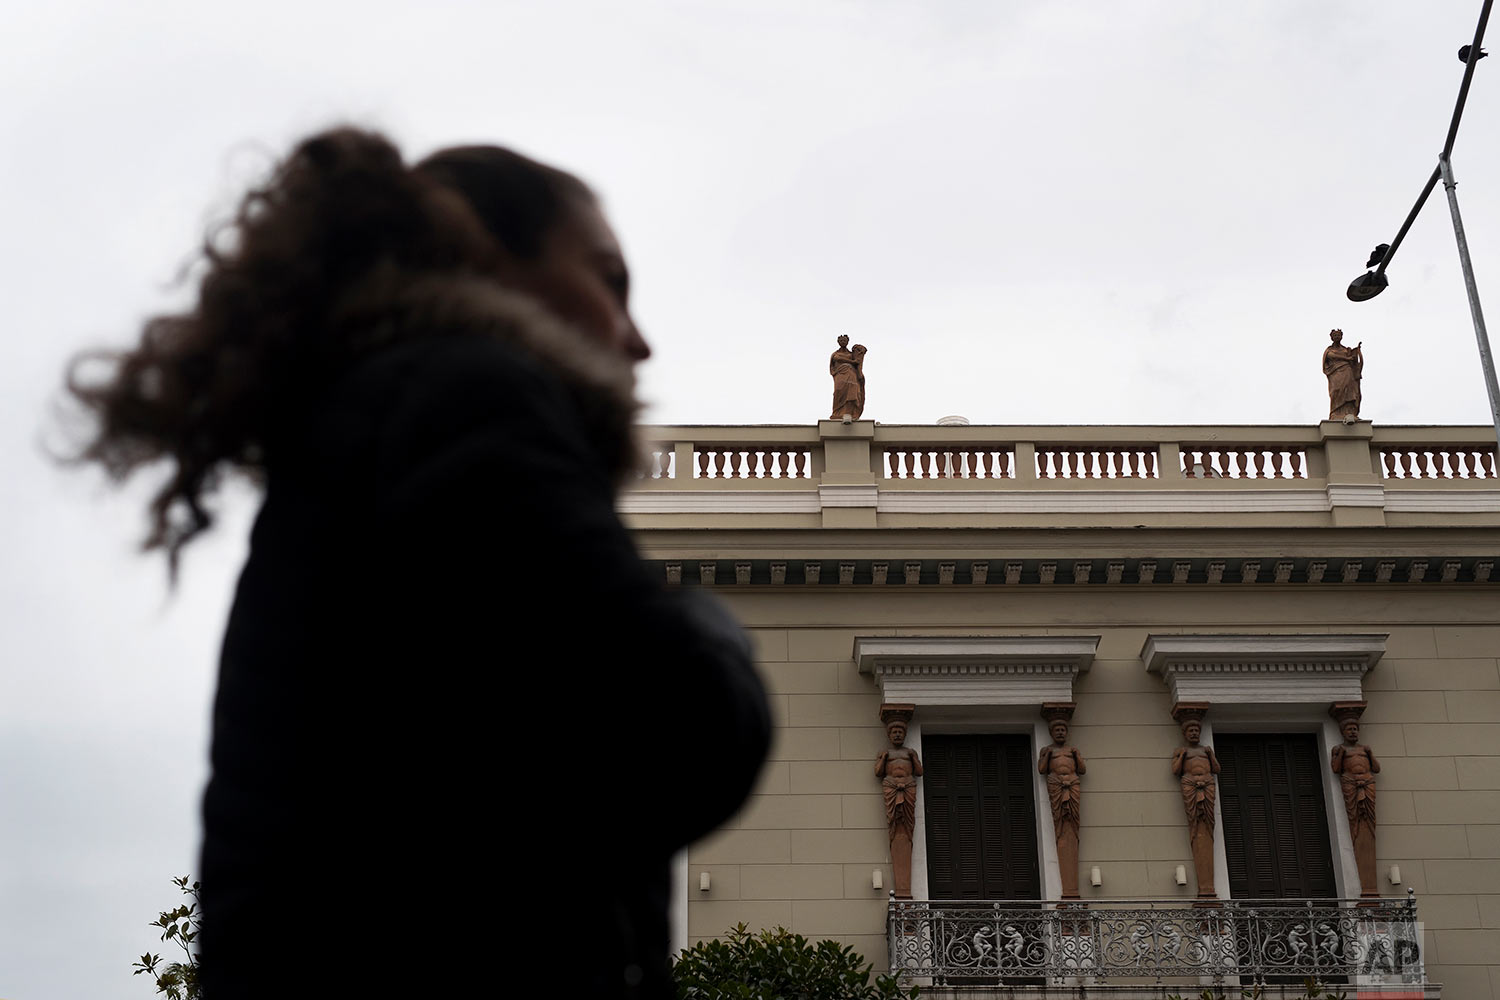 In this Thursday, Dec. 21, 2017 photo, a woman walks past a neoclassical building decorated with terracotta statues of the muses, on the roof, and Atlases, flanking the windows, made by sculptor and ceramicist Haralambos Goumas in Piraeus, the port of Athens. (AP Photo/Petros Giannakouris)